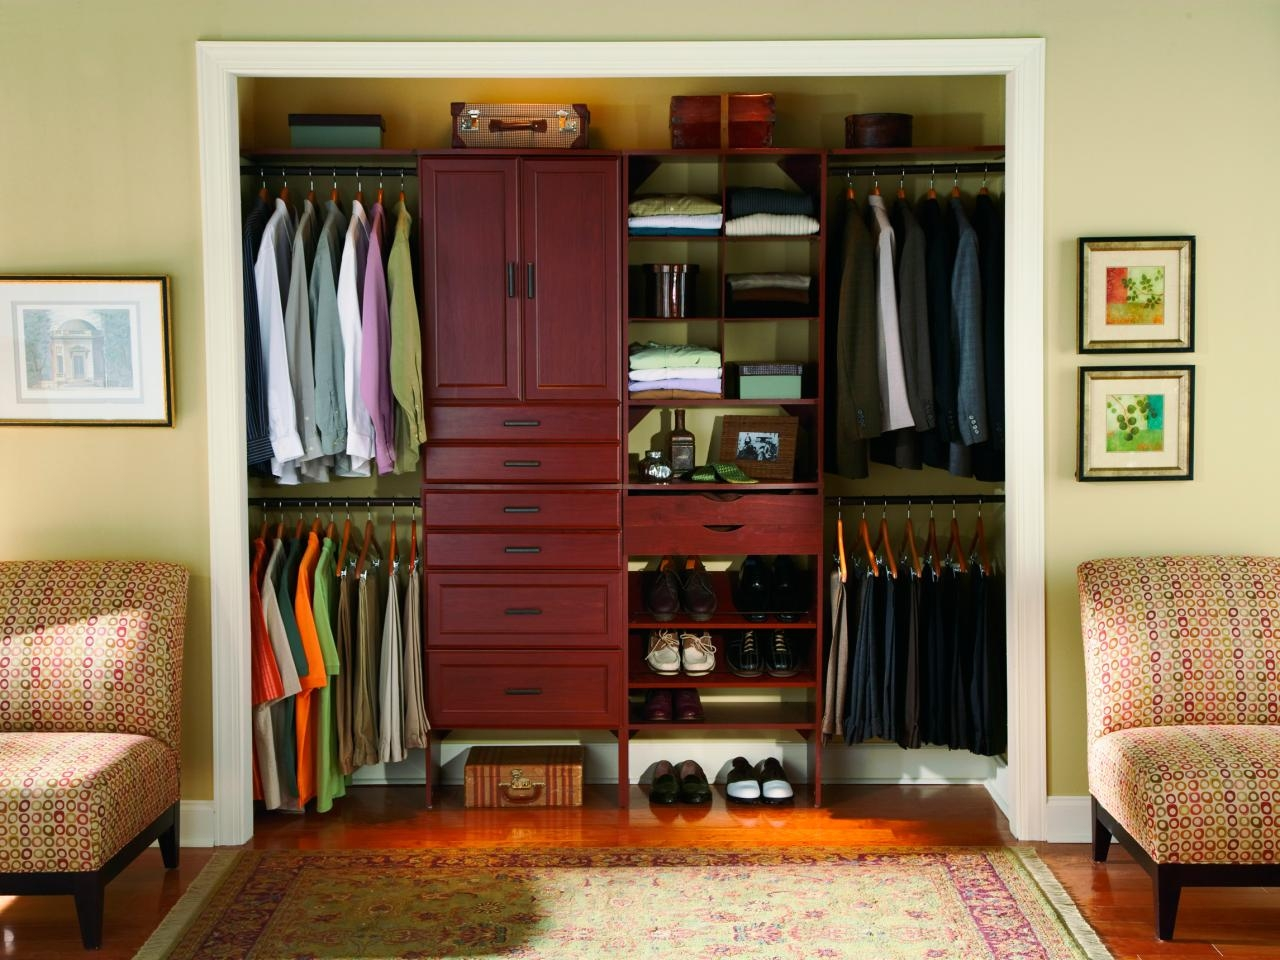 Small Closet Organization Ideas Pictures Options Tips Hgtv Regarding Bedroom Wardrobe Storages (View 17 of 25)